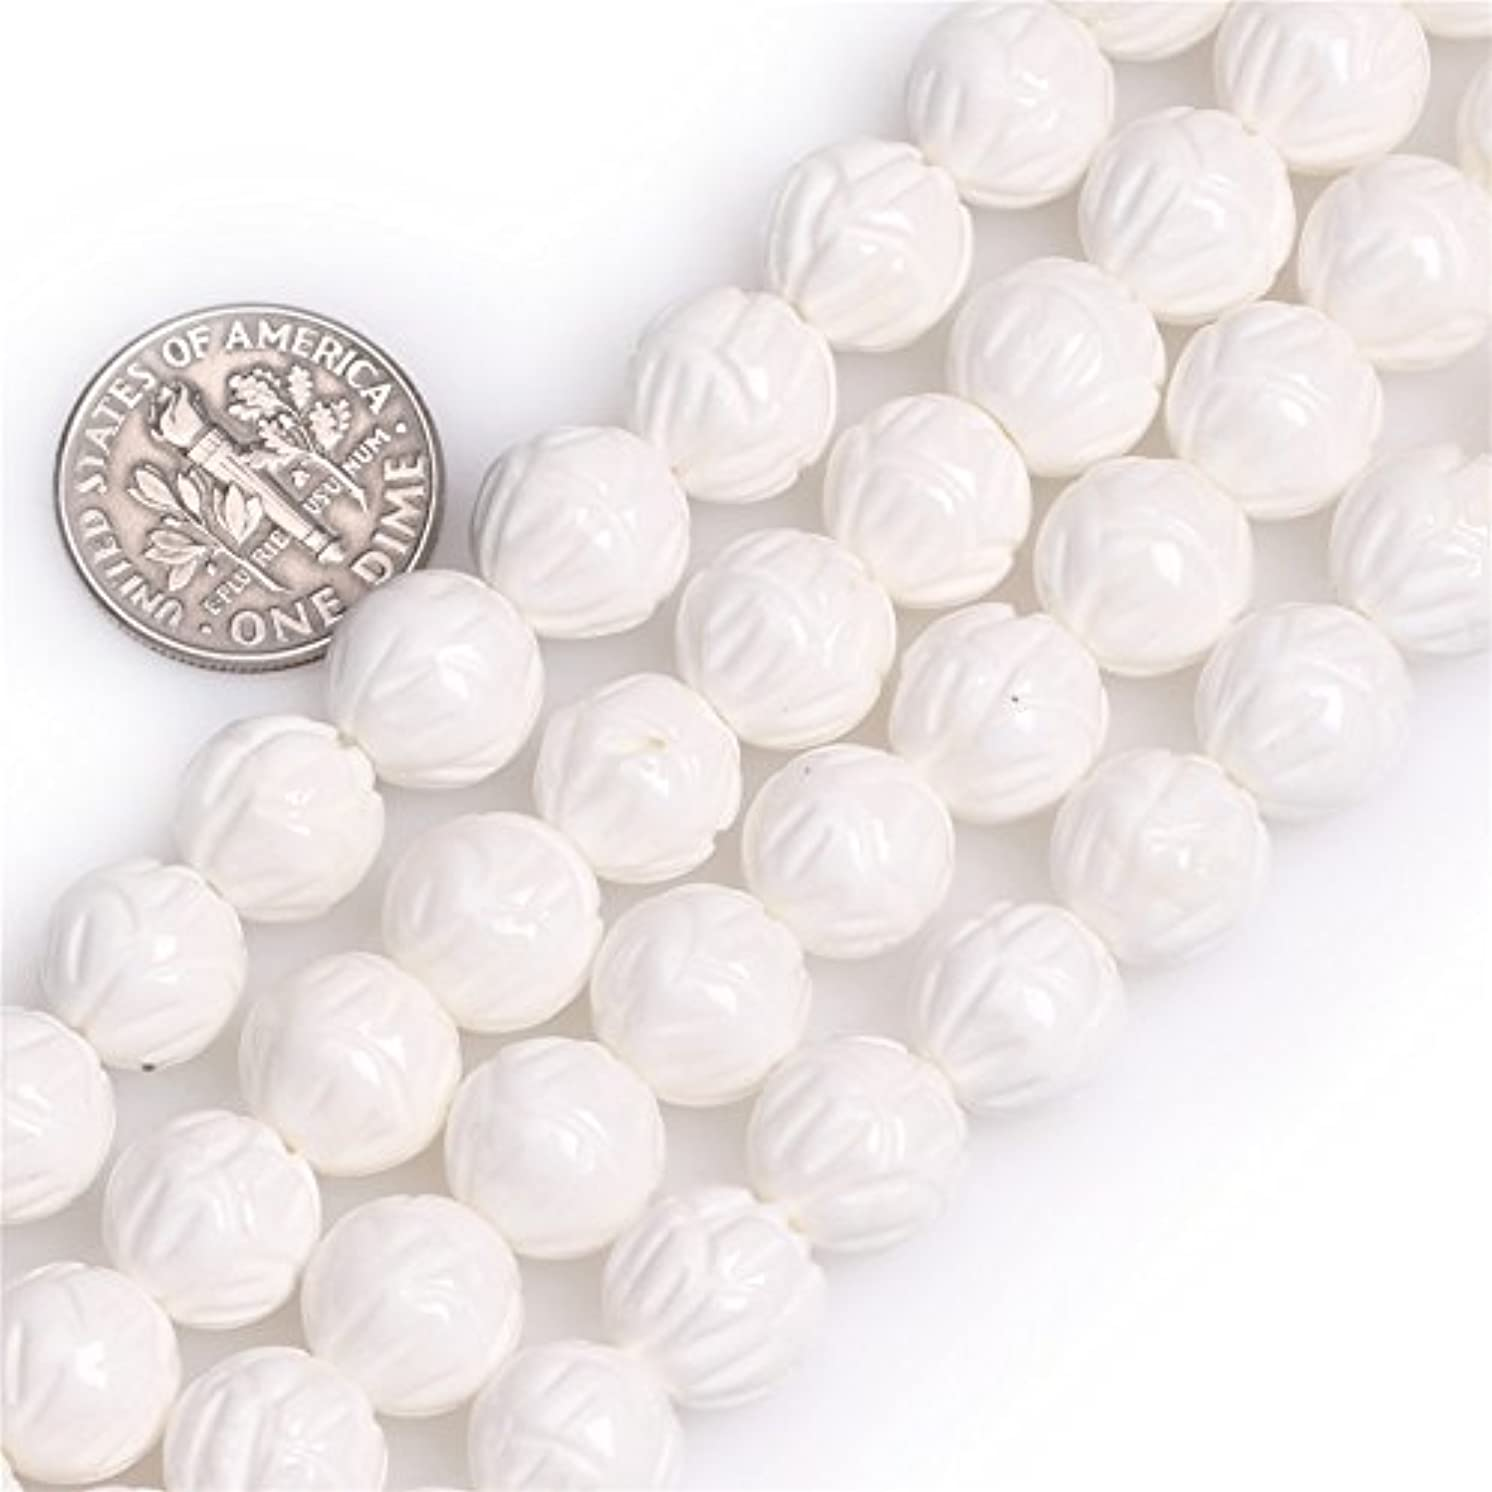 White Shell Beads for Jewelry Making Natural Gemstone Semi Precious 10mm Flower Shape 15